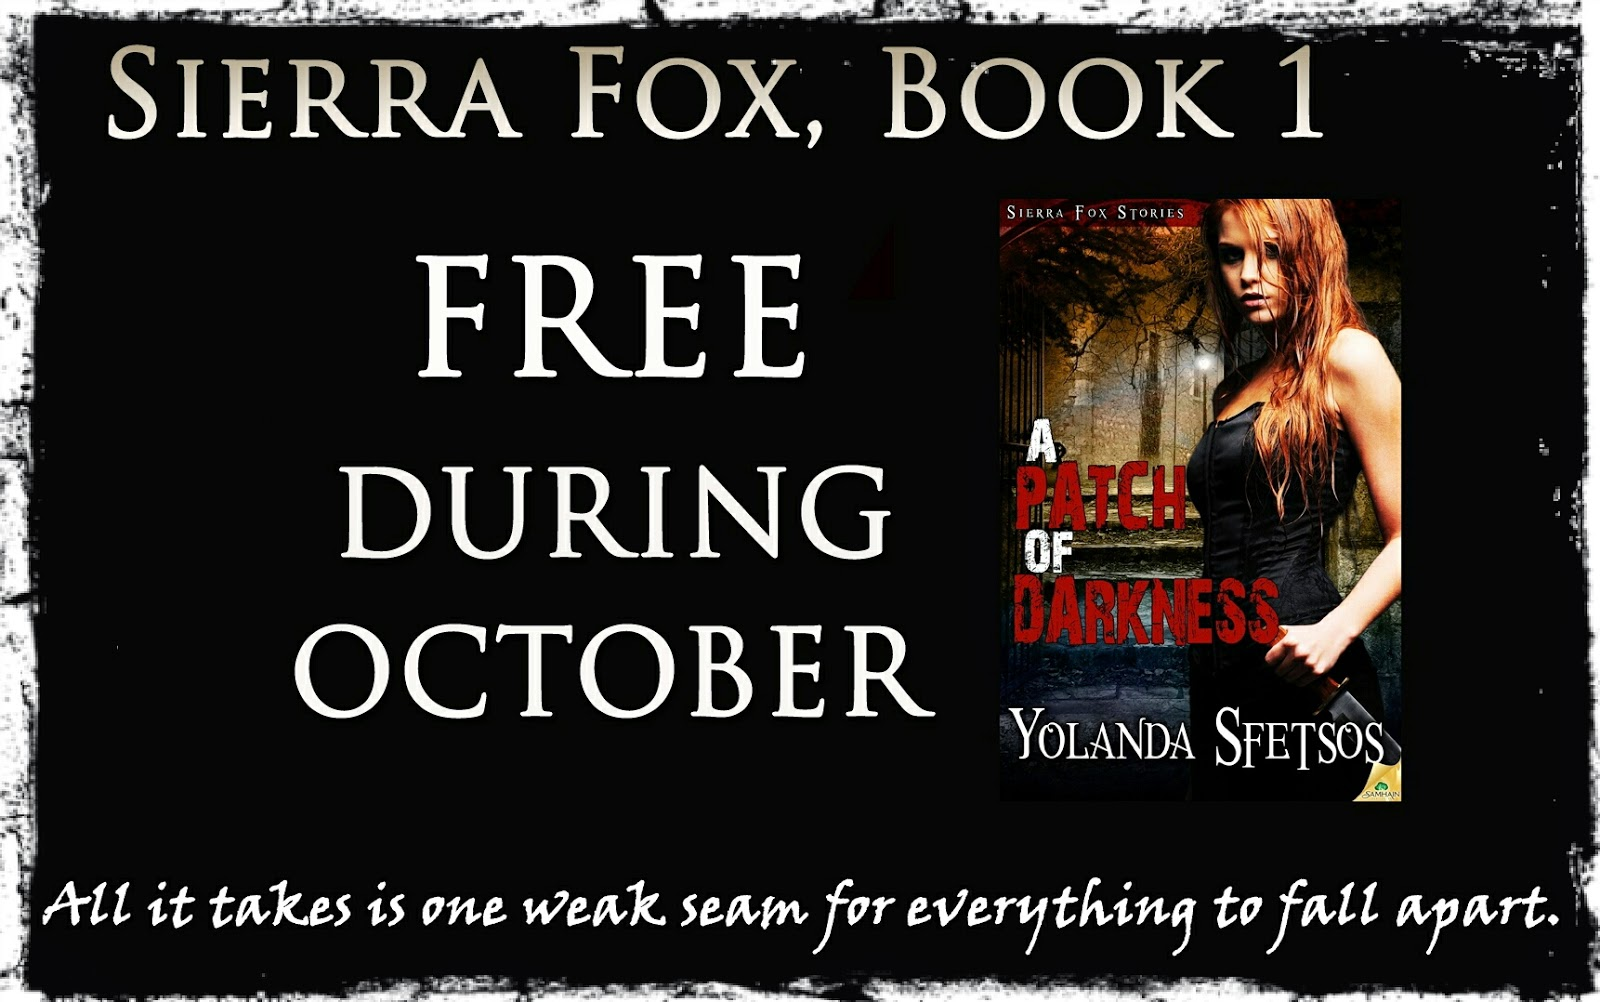 http://www.yolandasfetsos.com/2014/09/free-ebook-patch-of-darkness.html